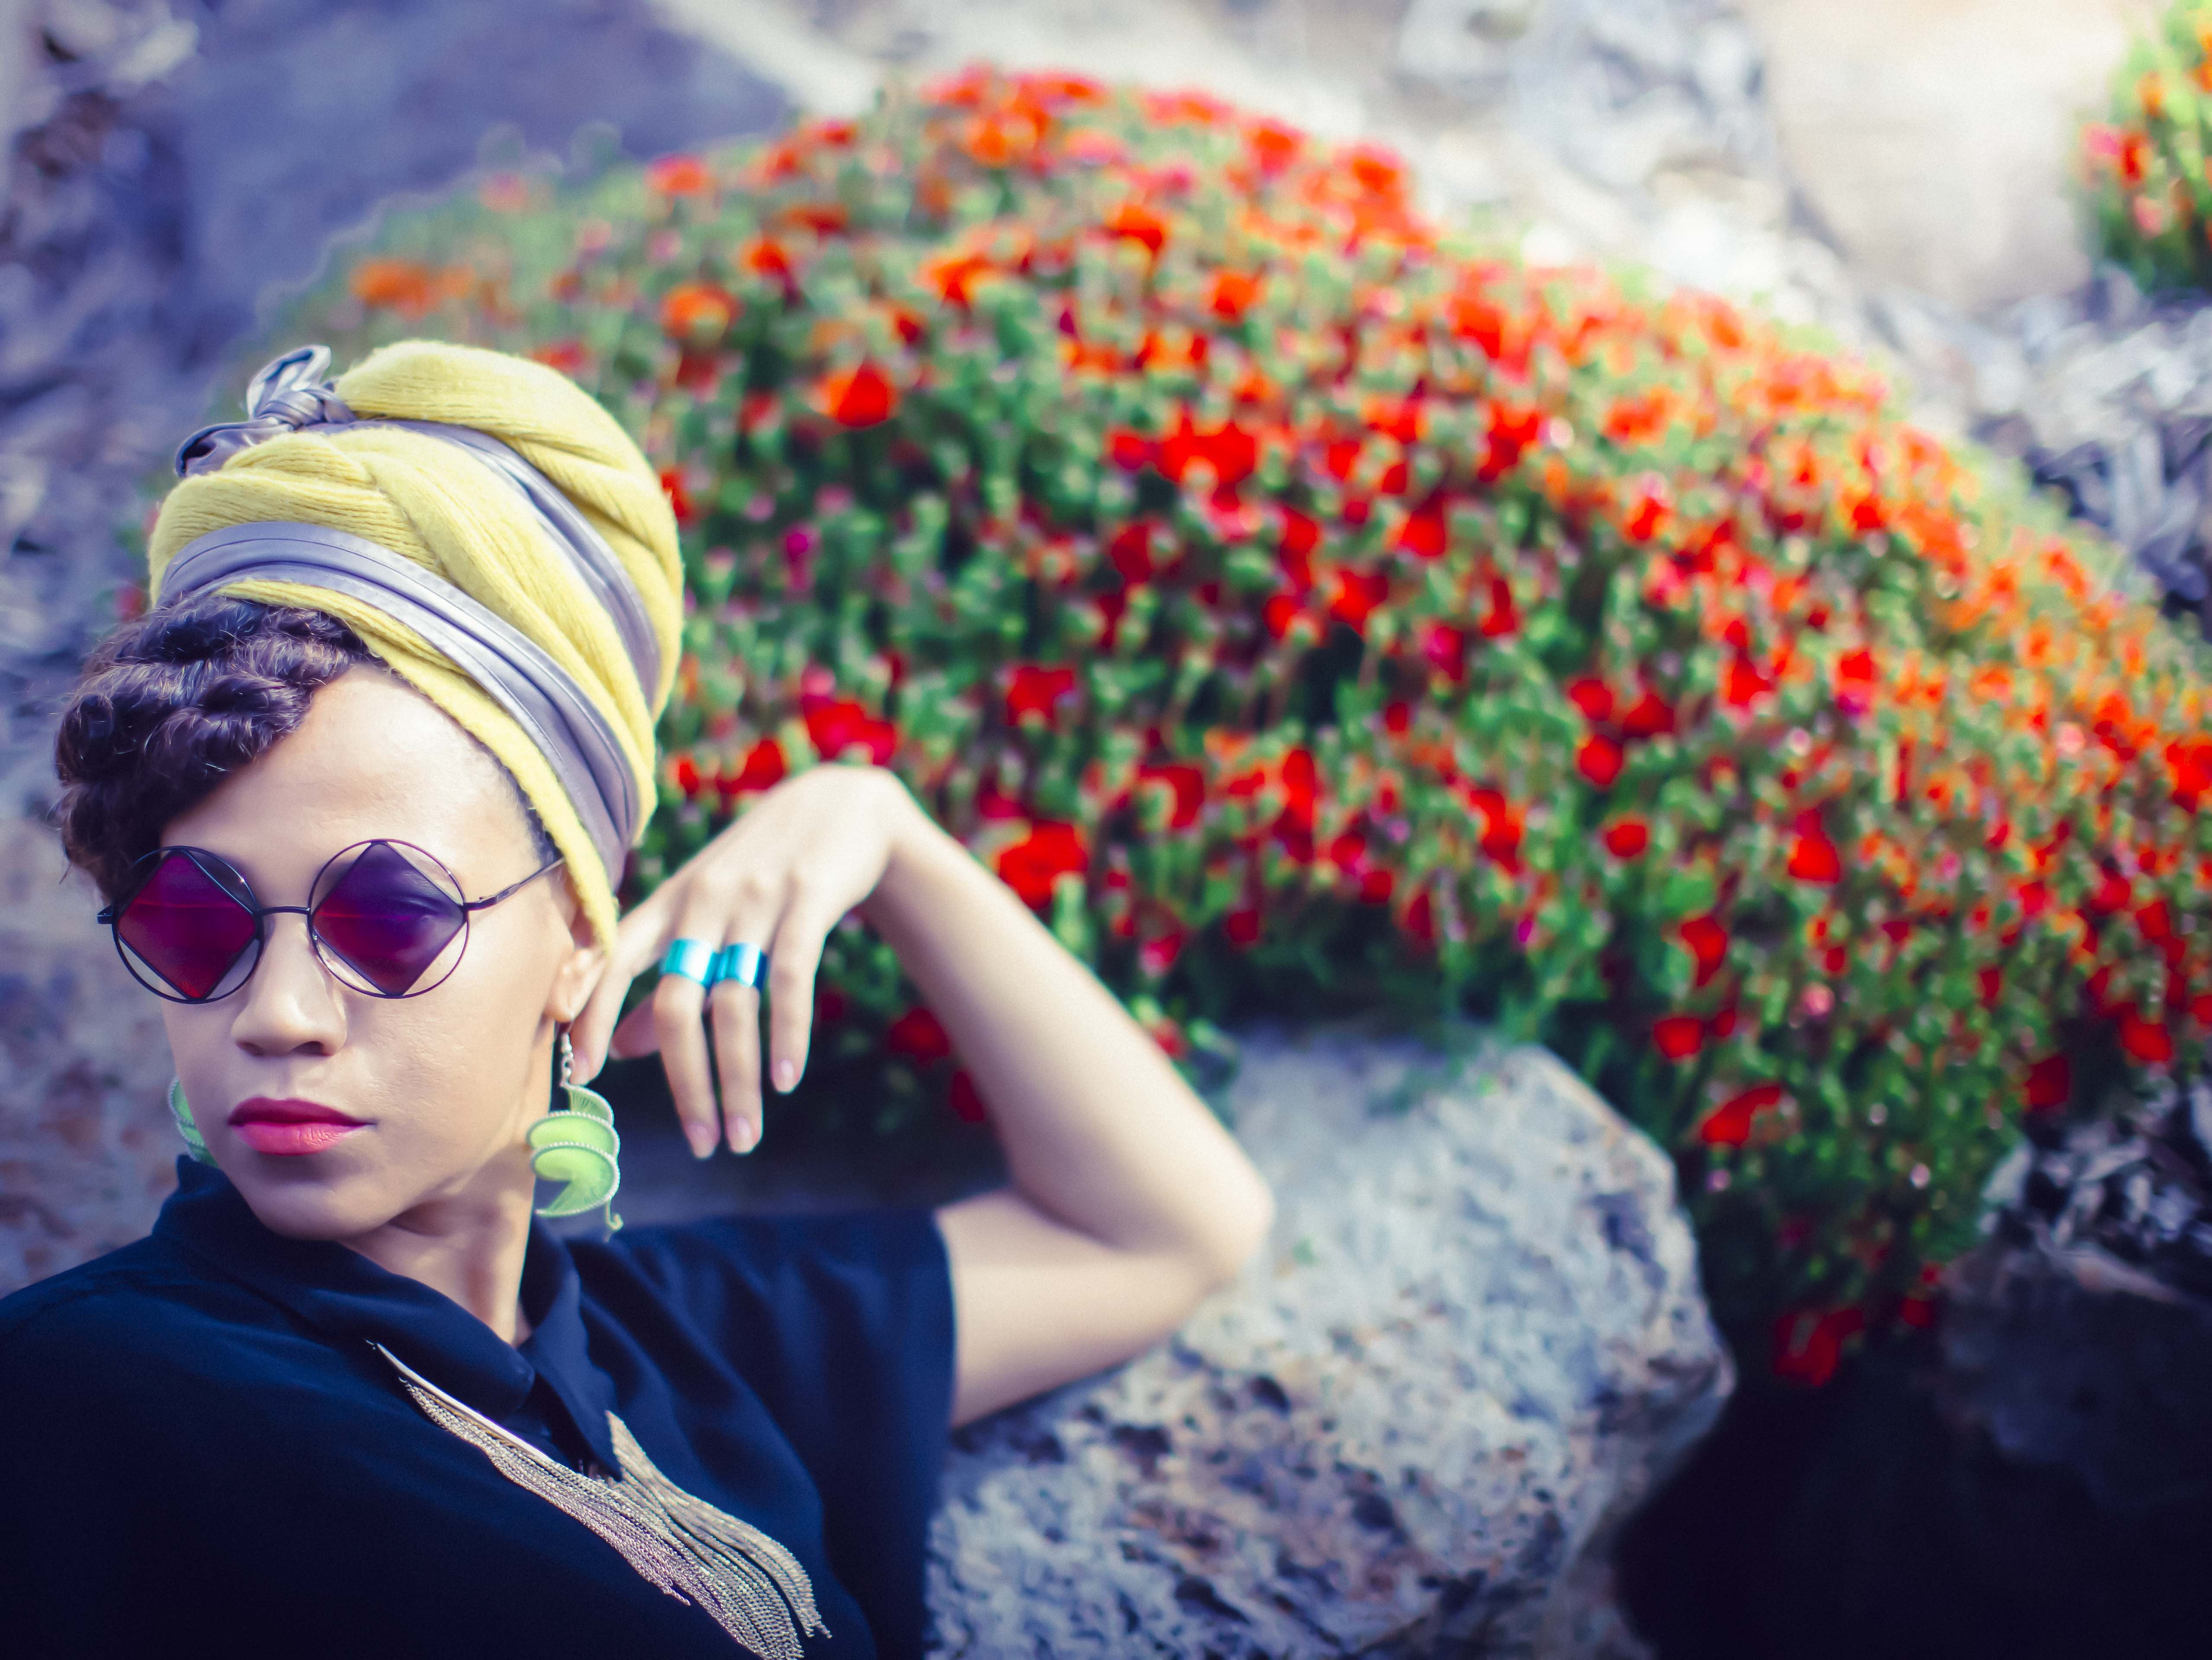 Photographer-andrew-kibuka_flower-in-the-desert_top-african-bloggers-2015_paris-street-style_top-stylists-melbourne-19